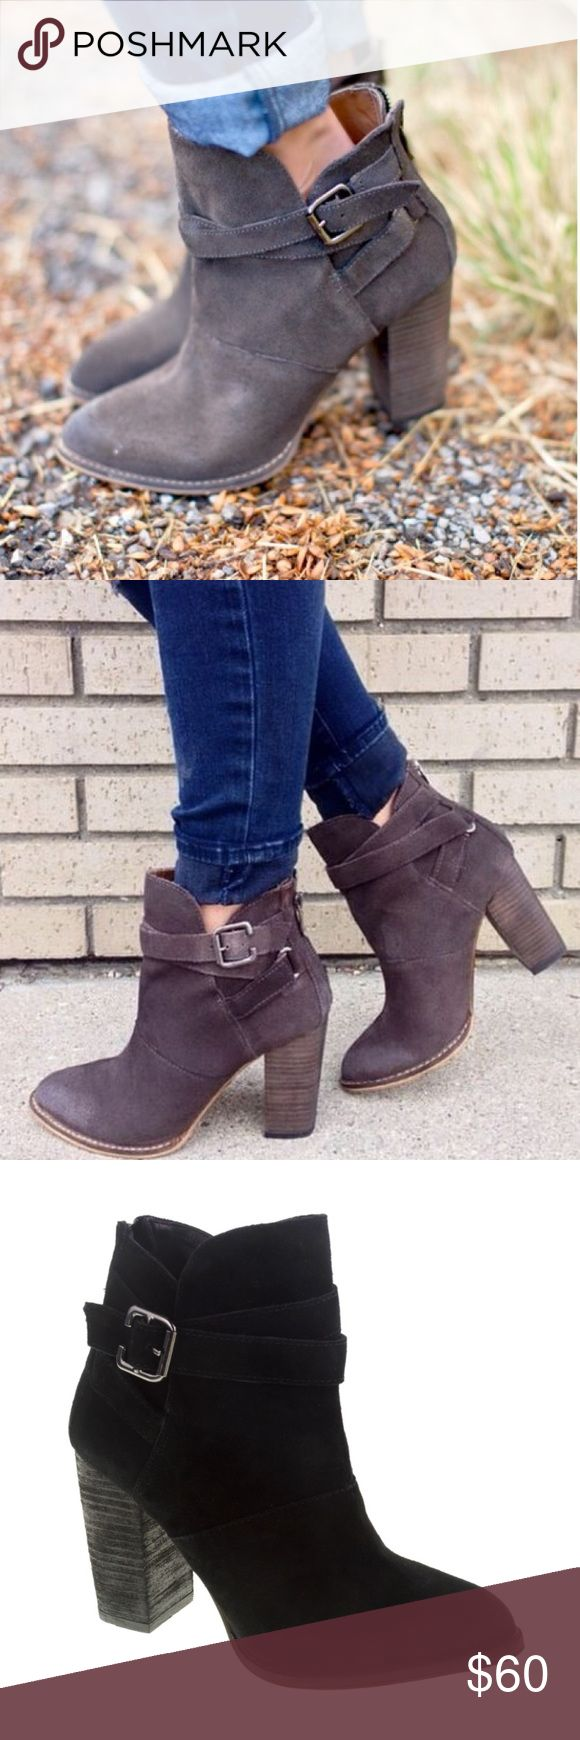 Chinese Laundry Bootie NWT!!  Blogger favorite Bootie!  Goes great with everything! Chinese Laundry Shoes Ankle Boots & Booties